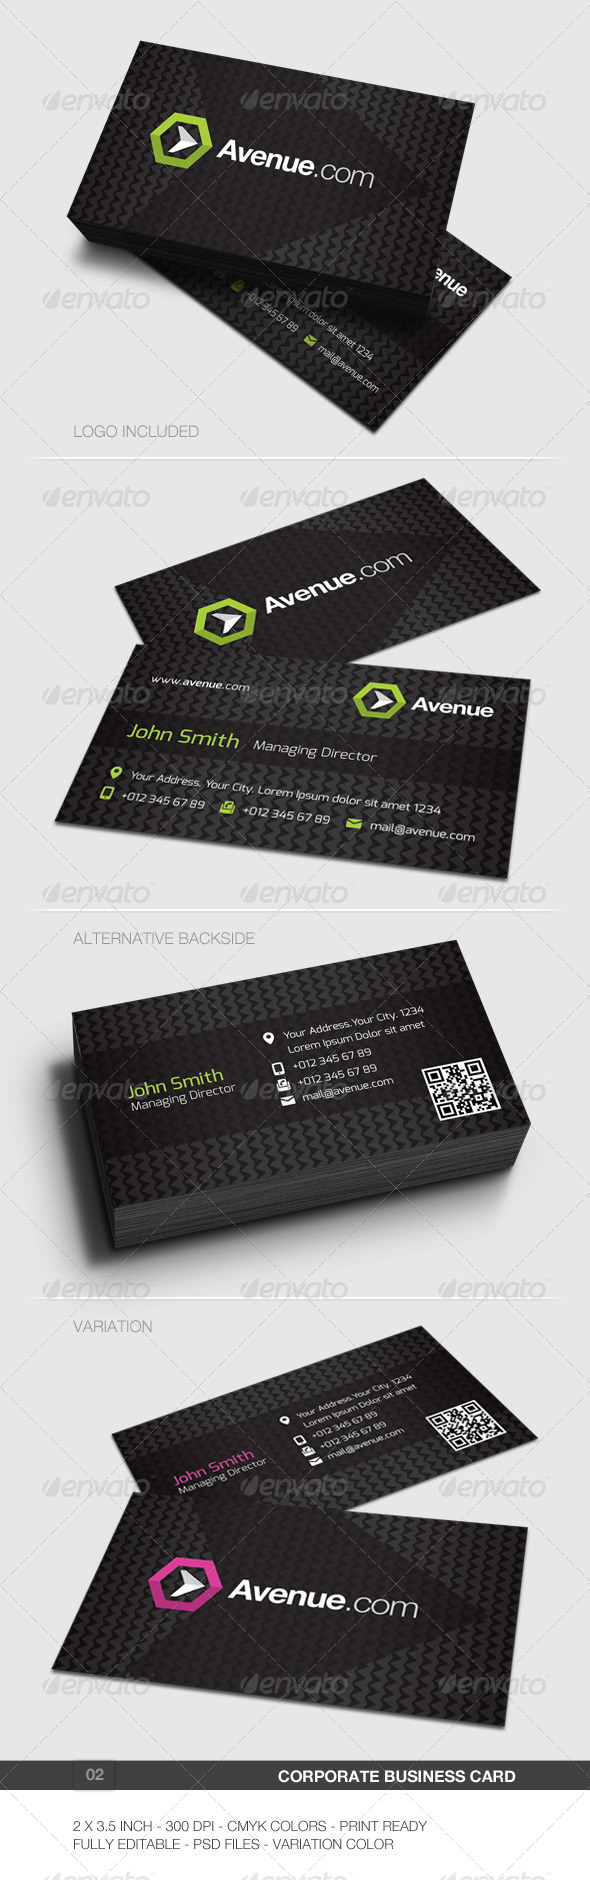 GraphicRiver Corporate Business Card 02 5897062